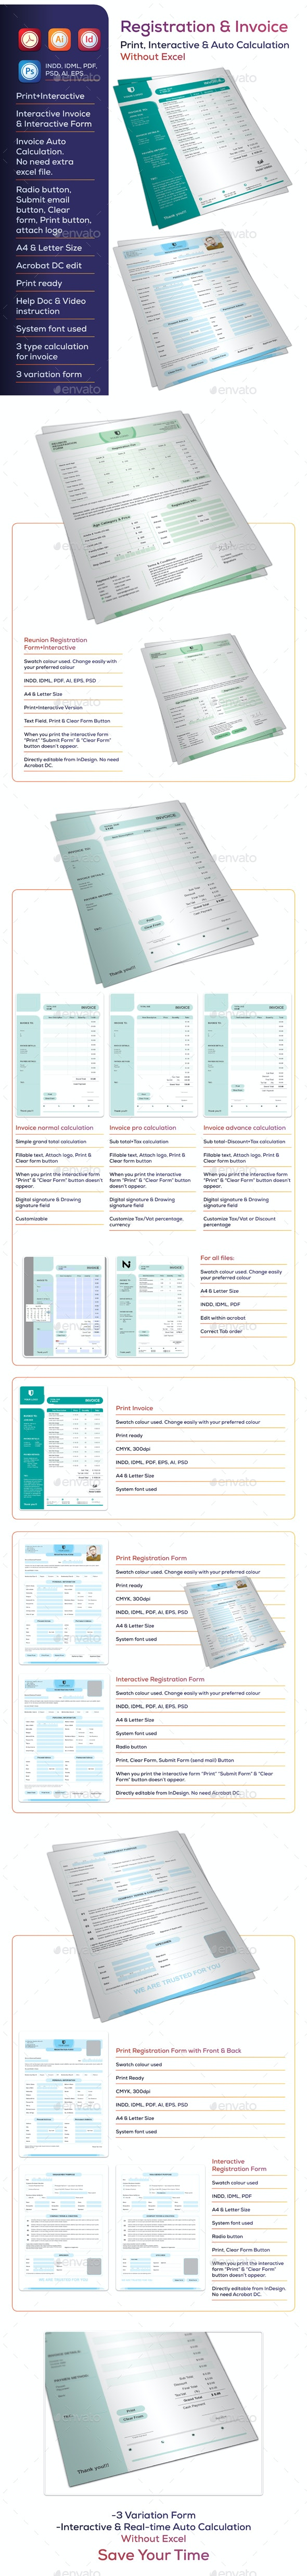 Interactive & Print Invoice and Form - Proposals & Invoices Stationery